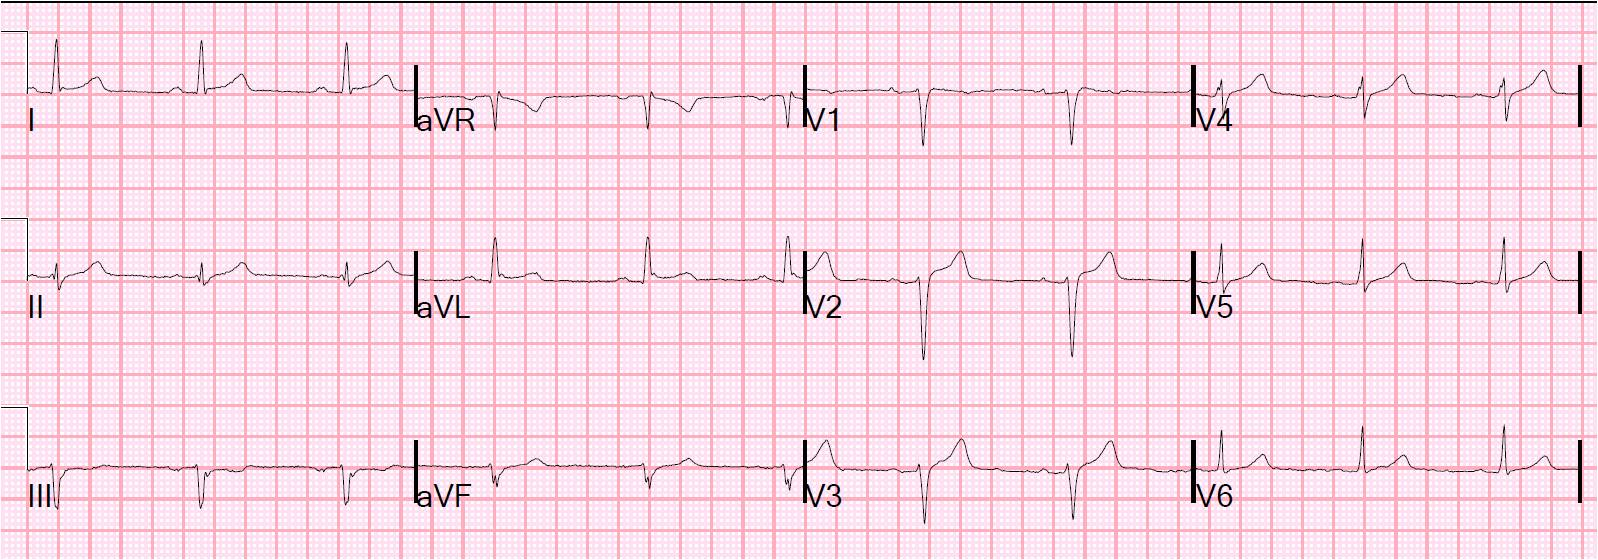 Tombstone St Elevation : Dr smith s ecg anterior st elevation is it stemi